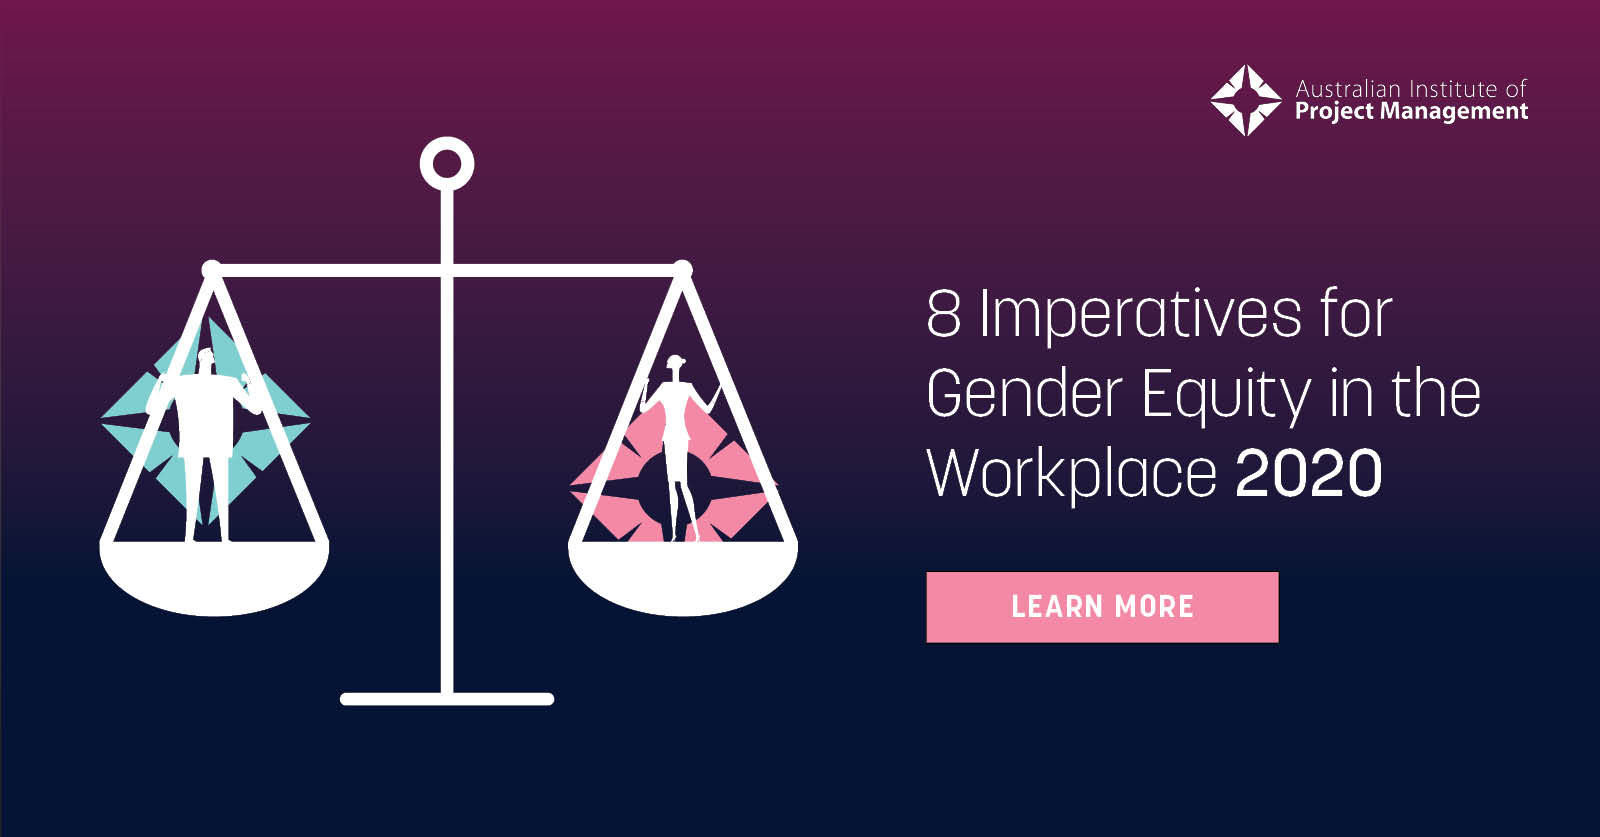 Gender-Equity-infographic-title.jpg